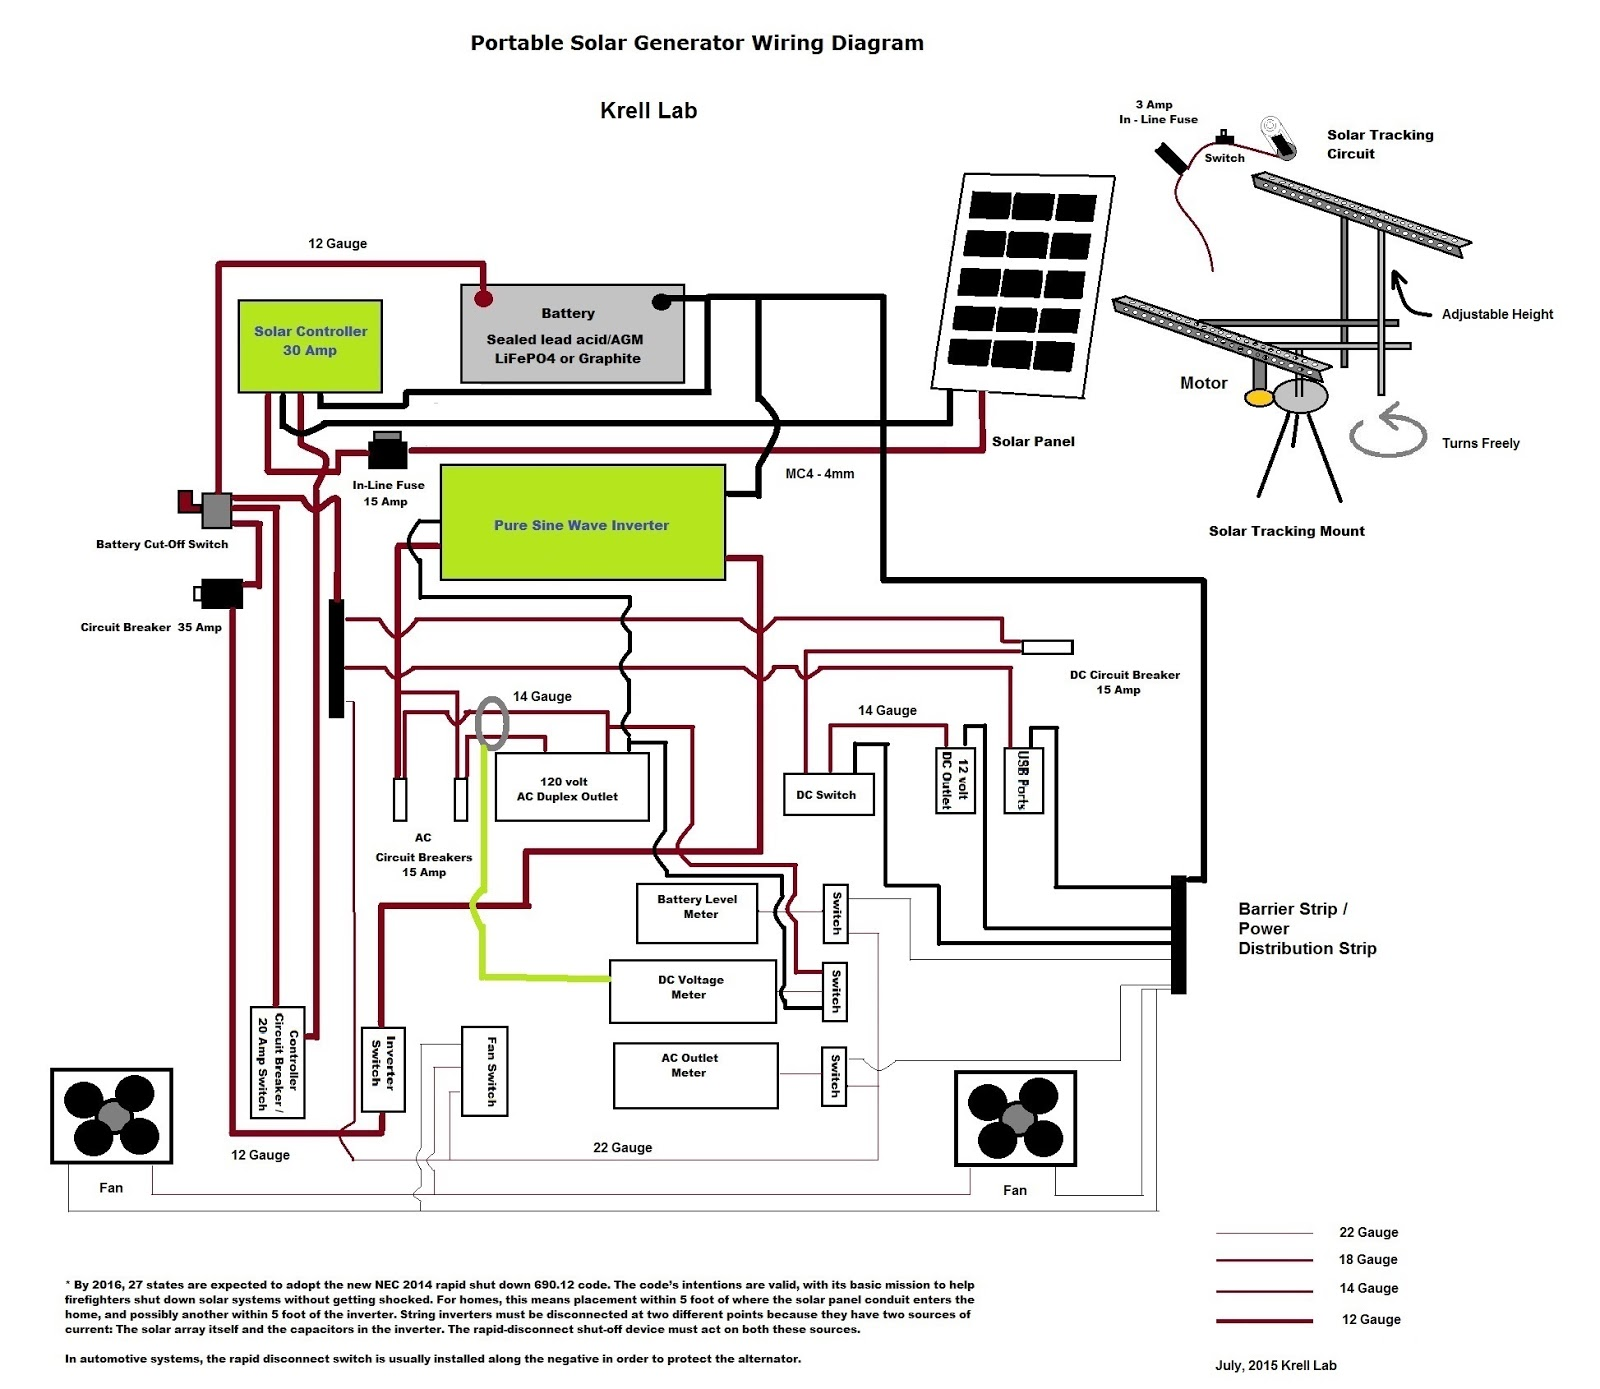 Wind Amp Solar Wiring Diagrams - Piezo Wiring Diagram for Wiring Diagram  Schematics | Wind Amp Solar Wiring Diagrams |  | Wiring Diagram Schematics